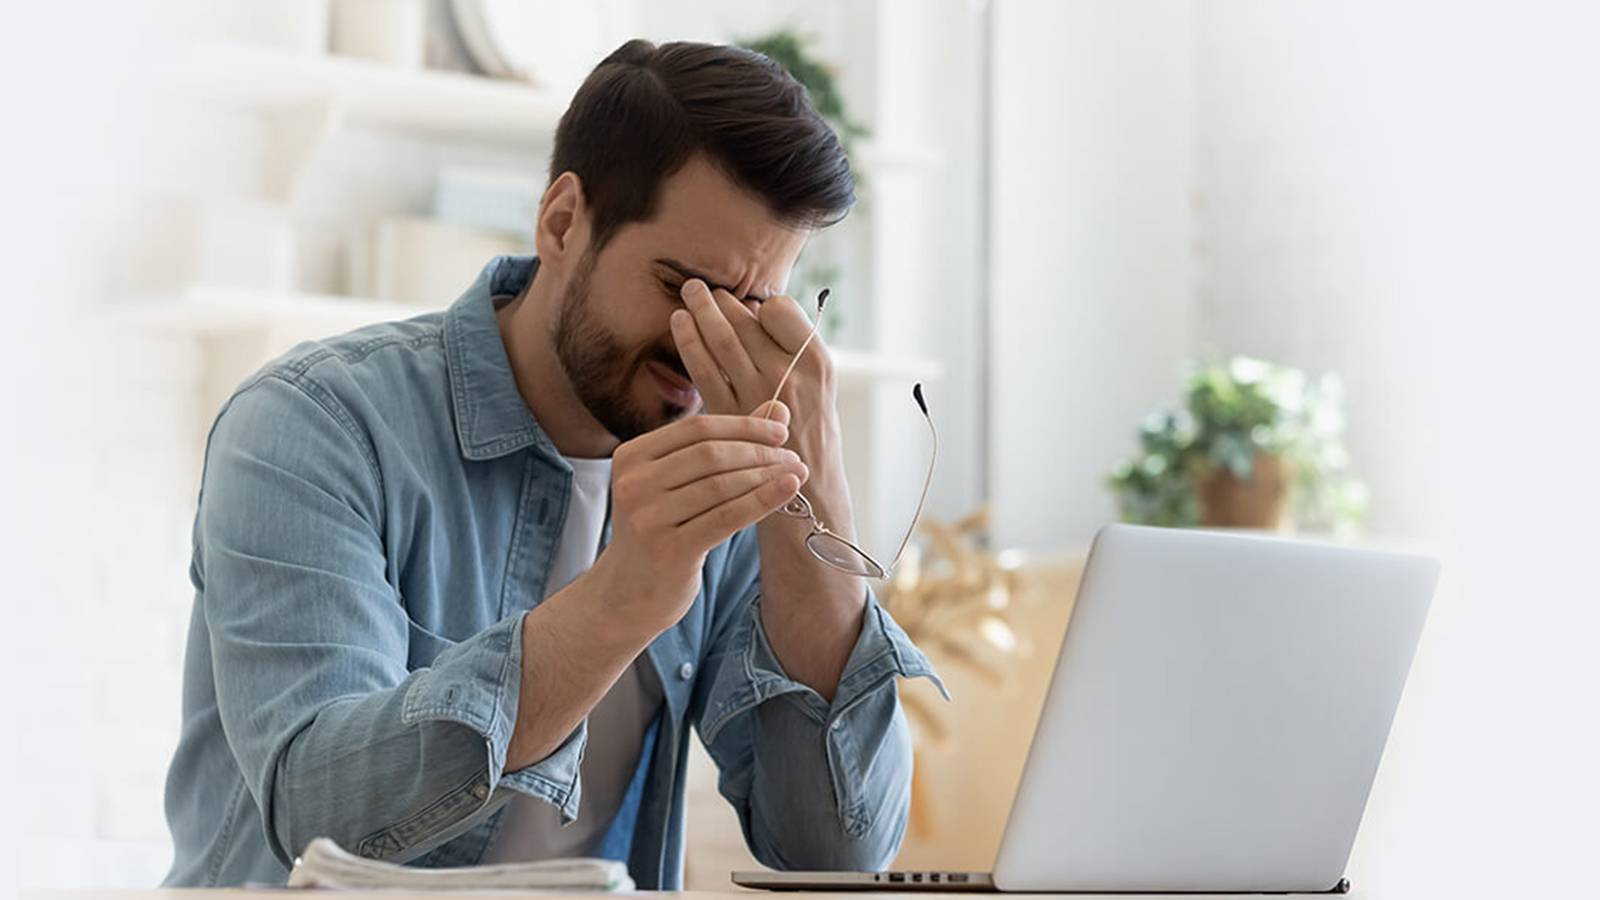 What is Computer eye-strain and how to prevent it from occurring?